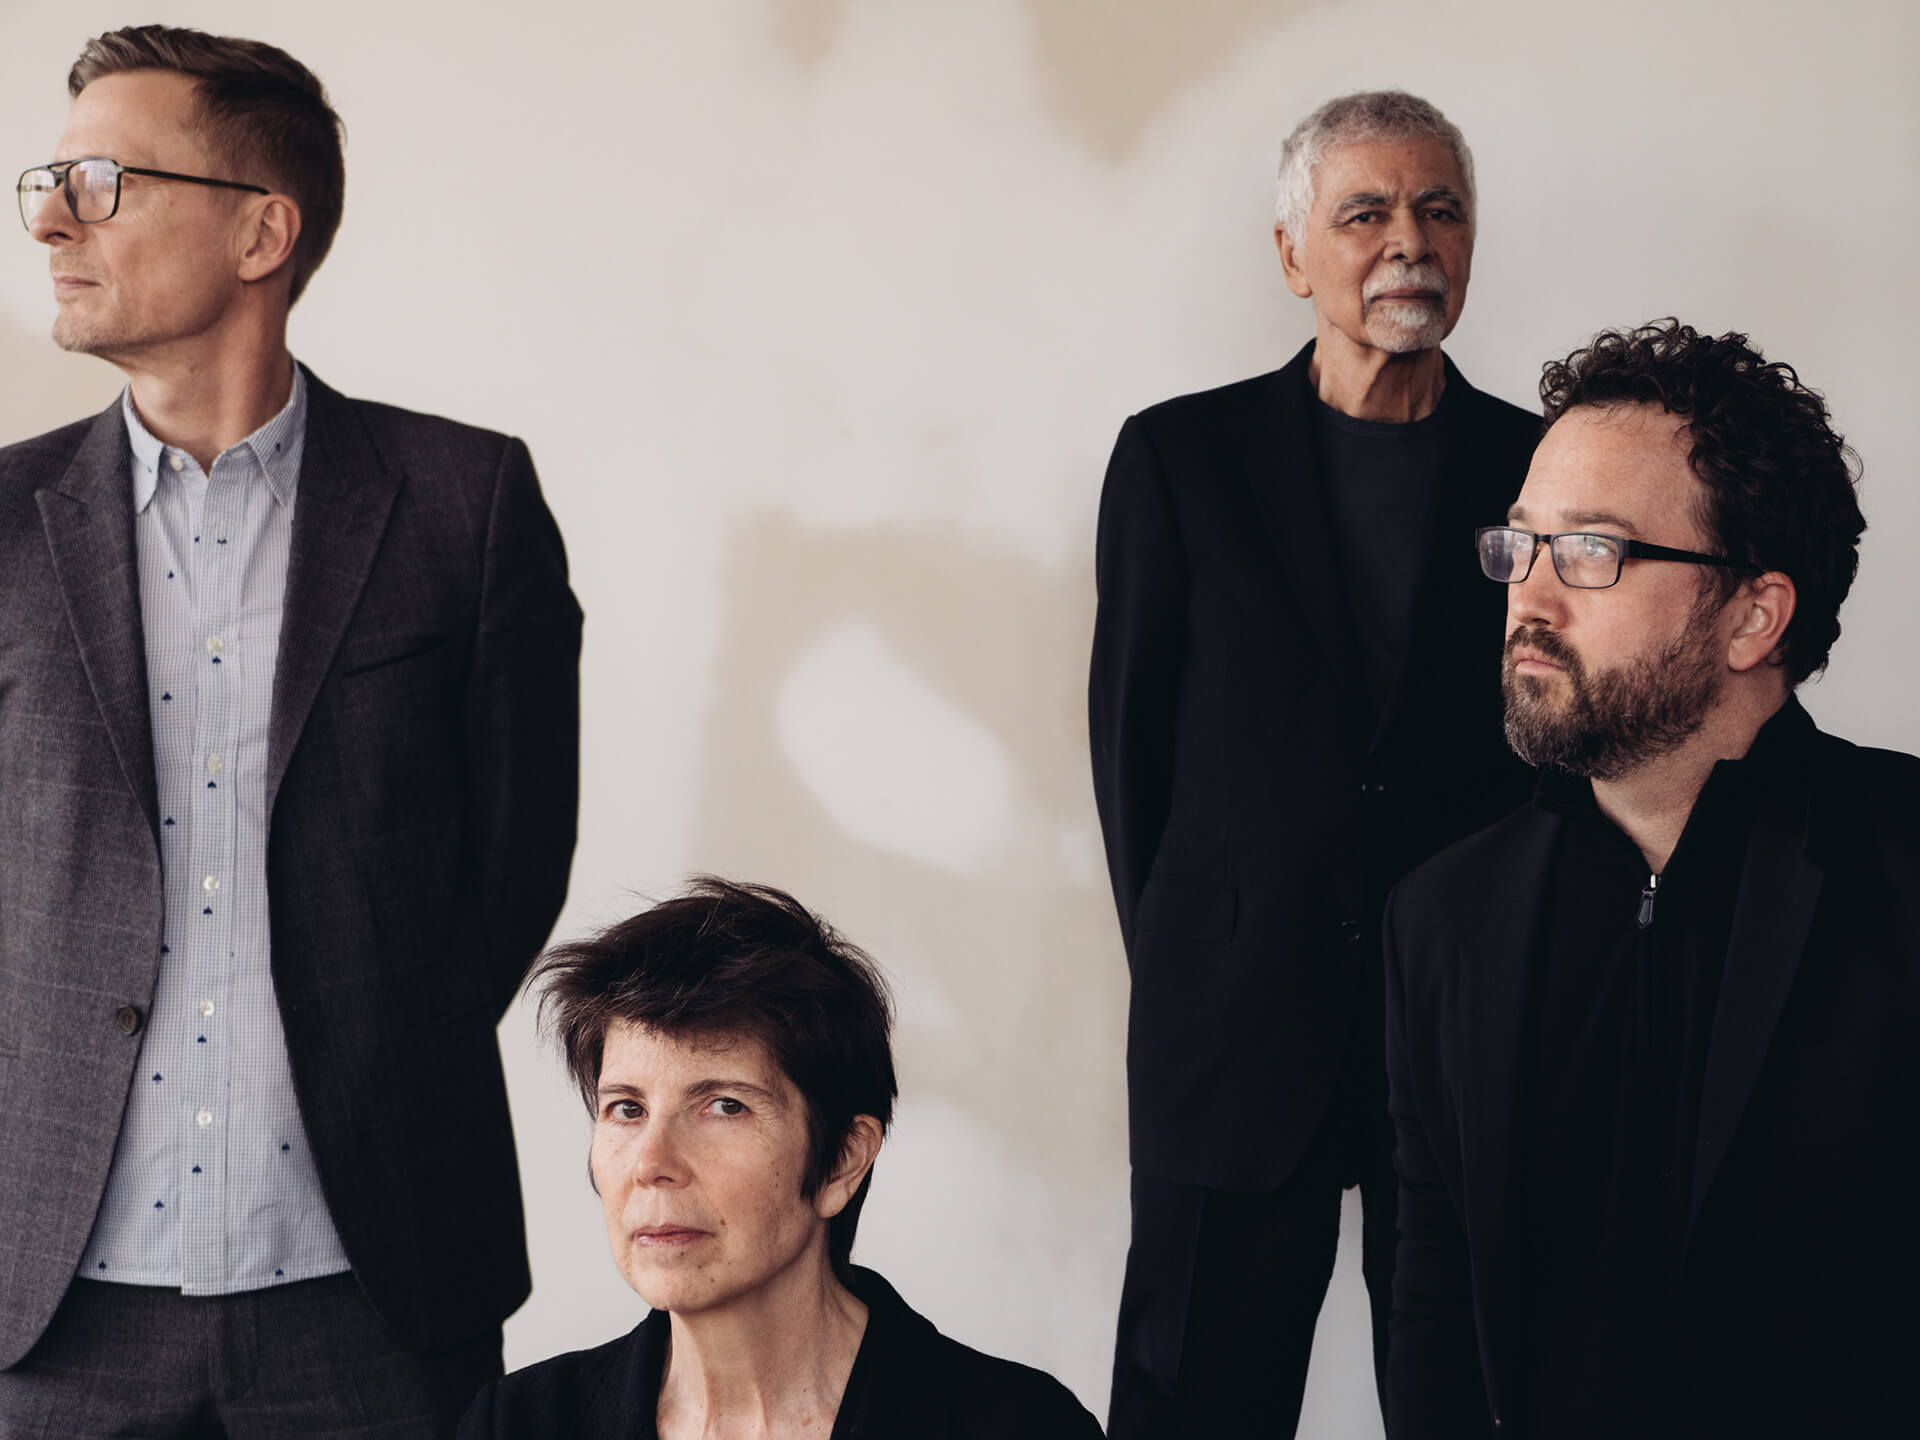 The four partners at DS+R - Elizabeth Diller, Ricardo Scofidio, Charles Renfro and Benjamin Gilmartin | Aboriginal Art and Cultures Centre | Diller Scofidio + Renfro | STIRworld